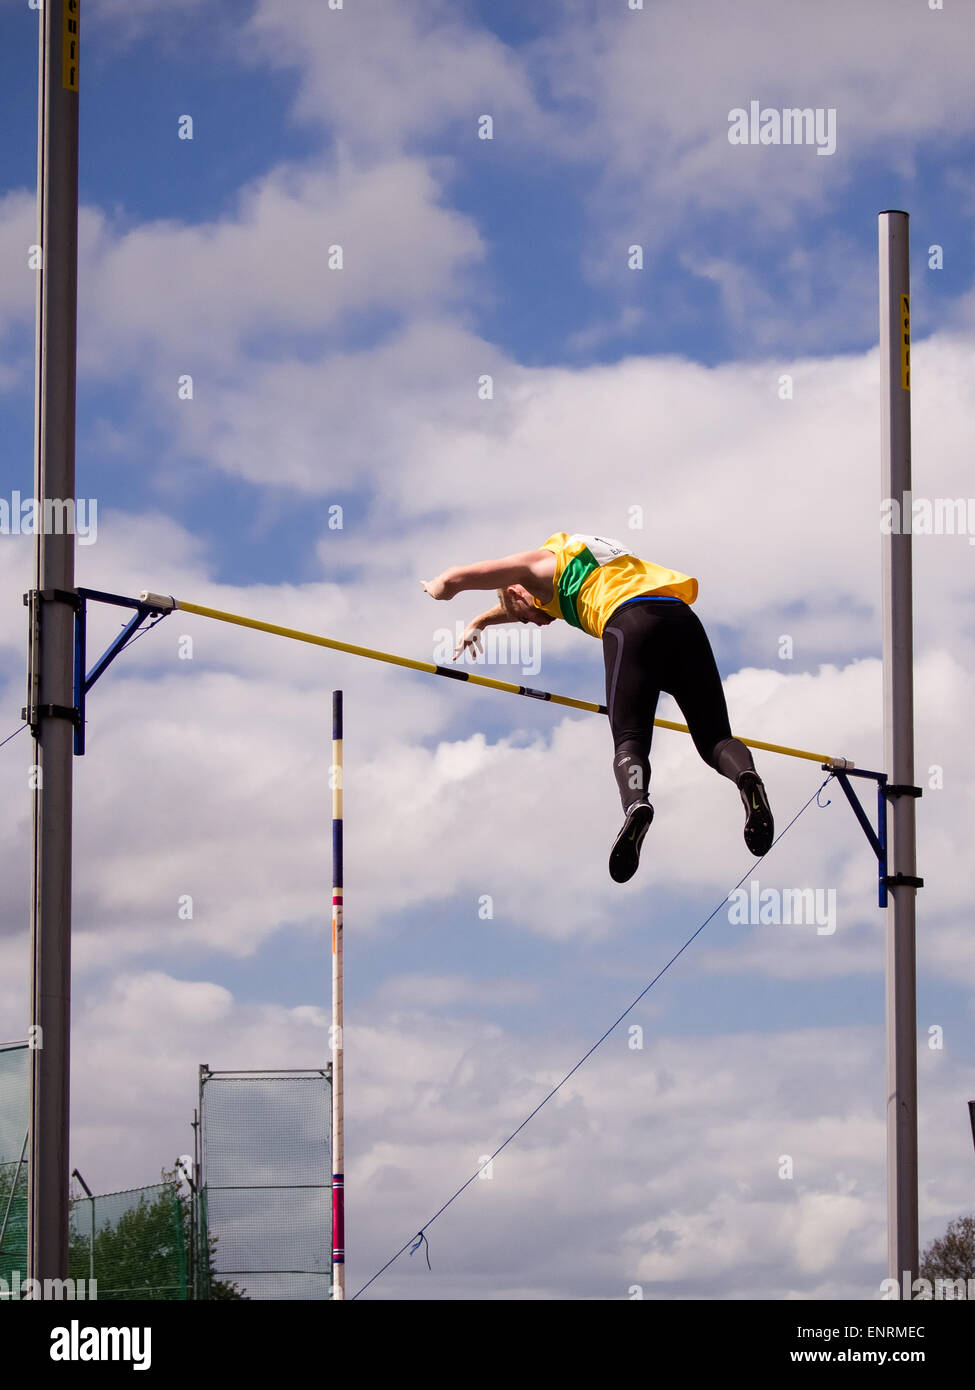 Mike Bartlett competes in the Pole Vault during the 2015 British Athletics League - Stock Image